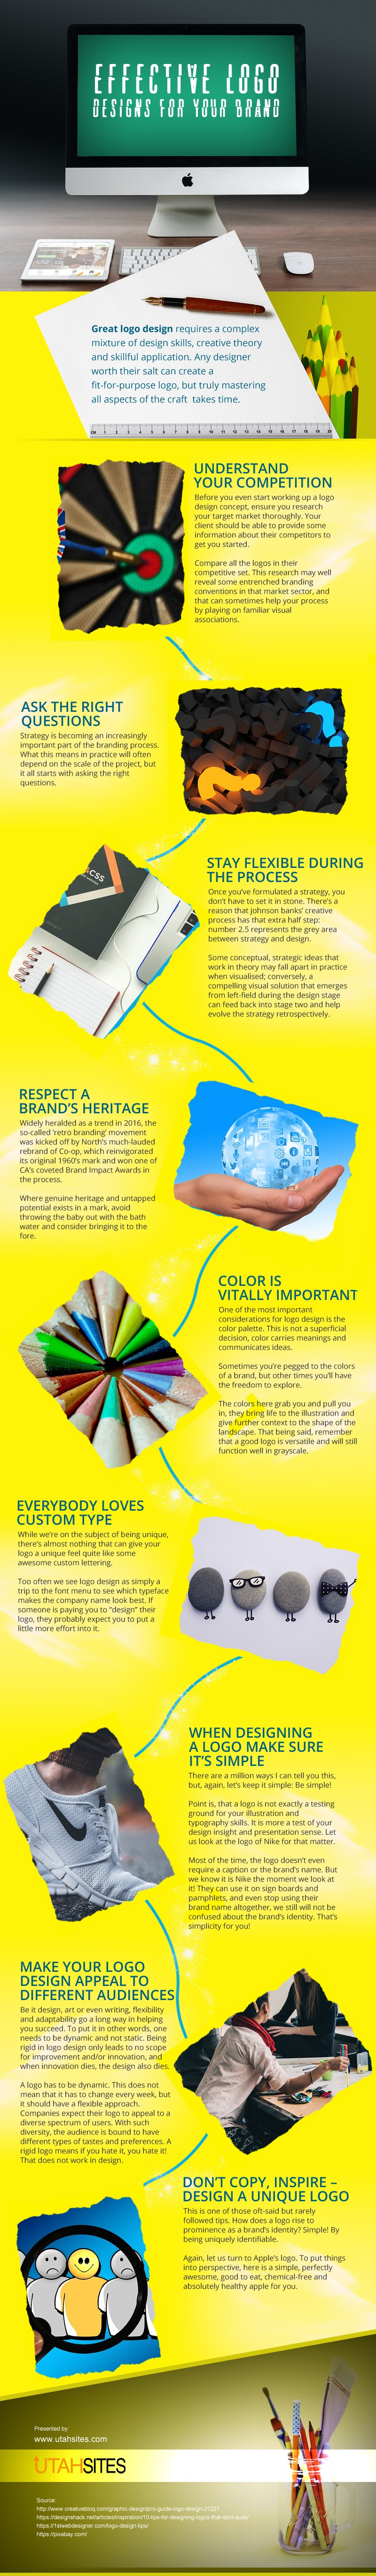 Effective Logo Designs for your Brand [infographic]